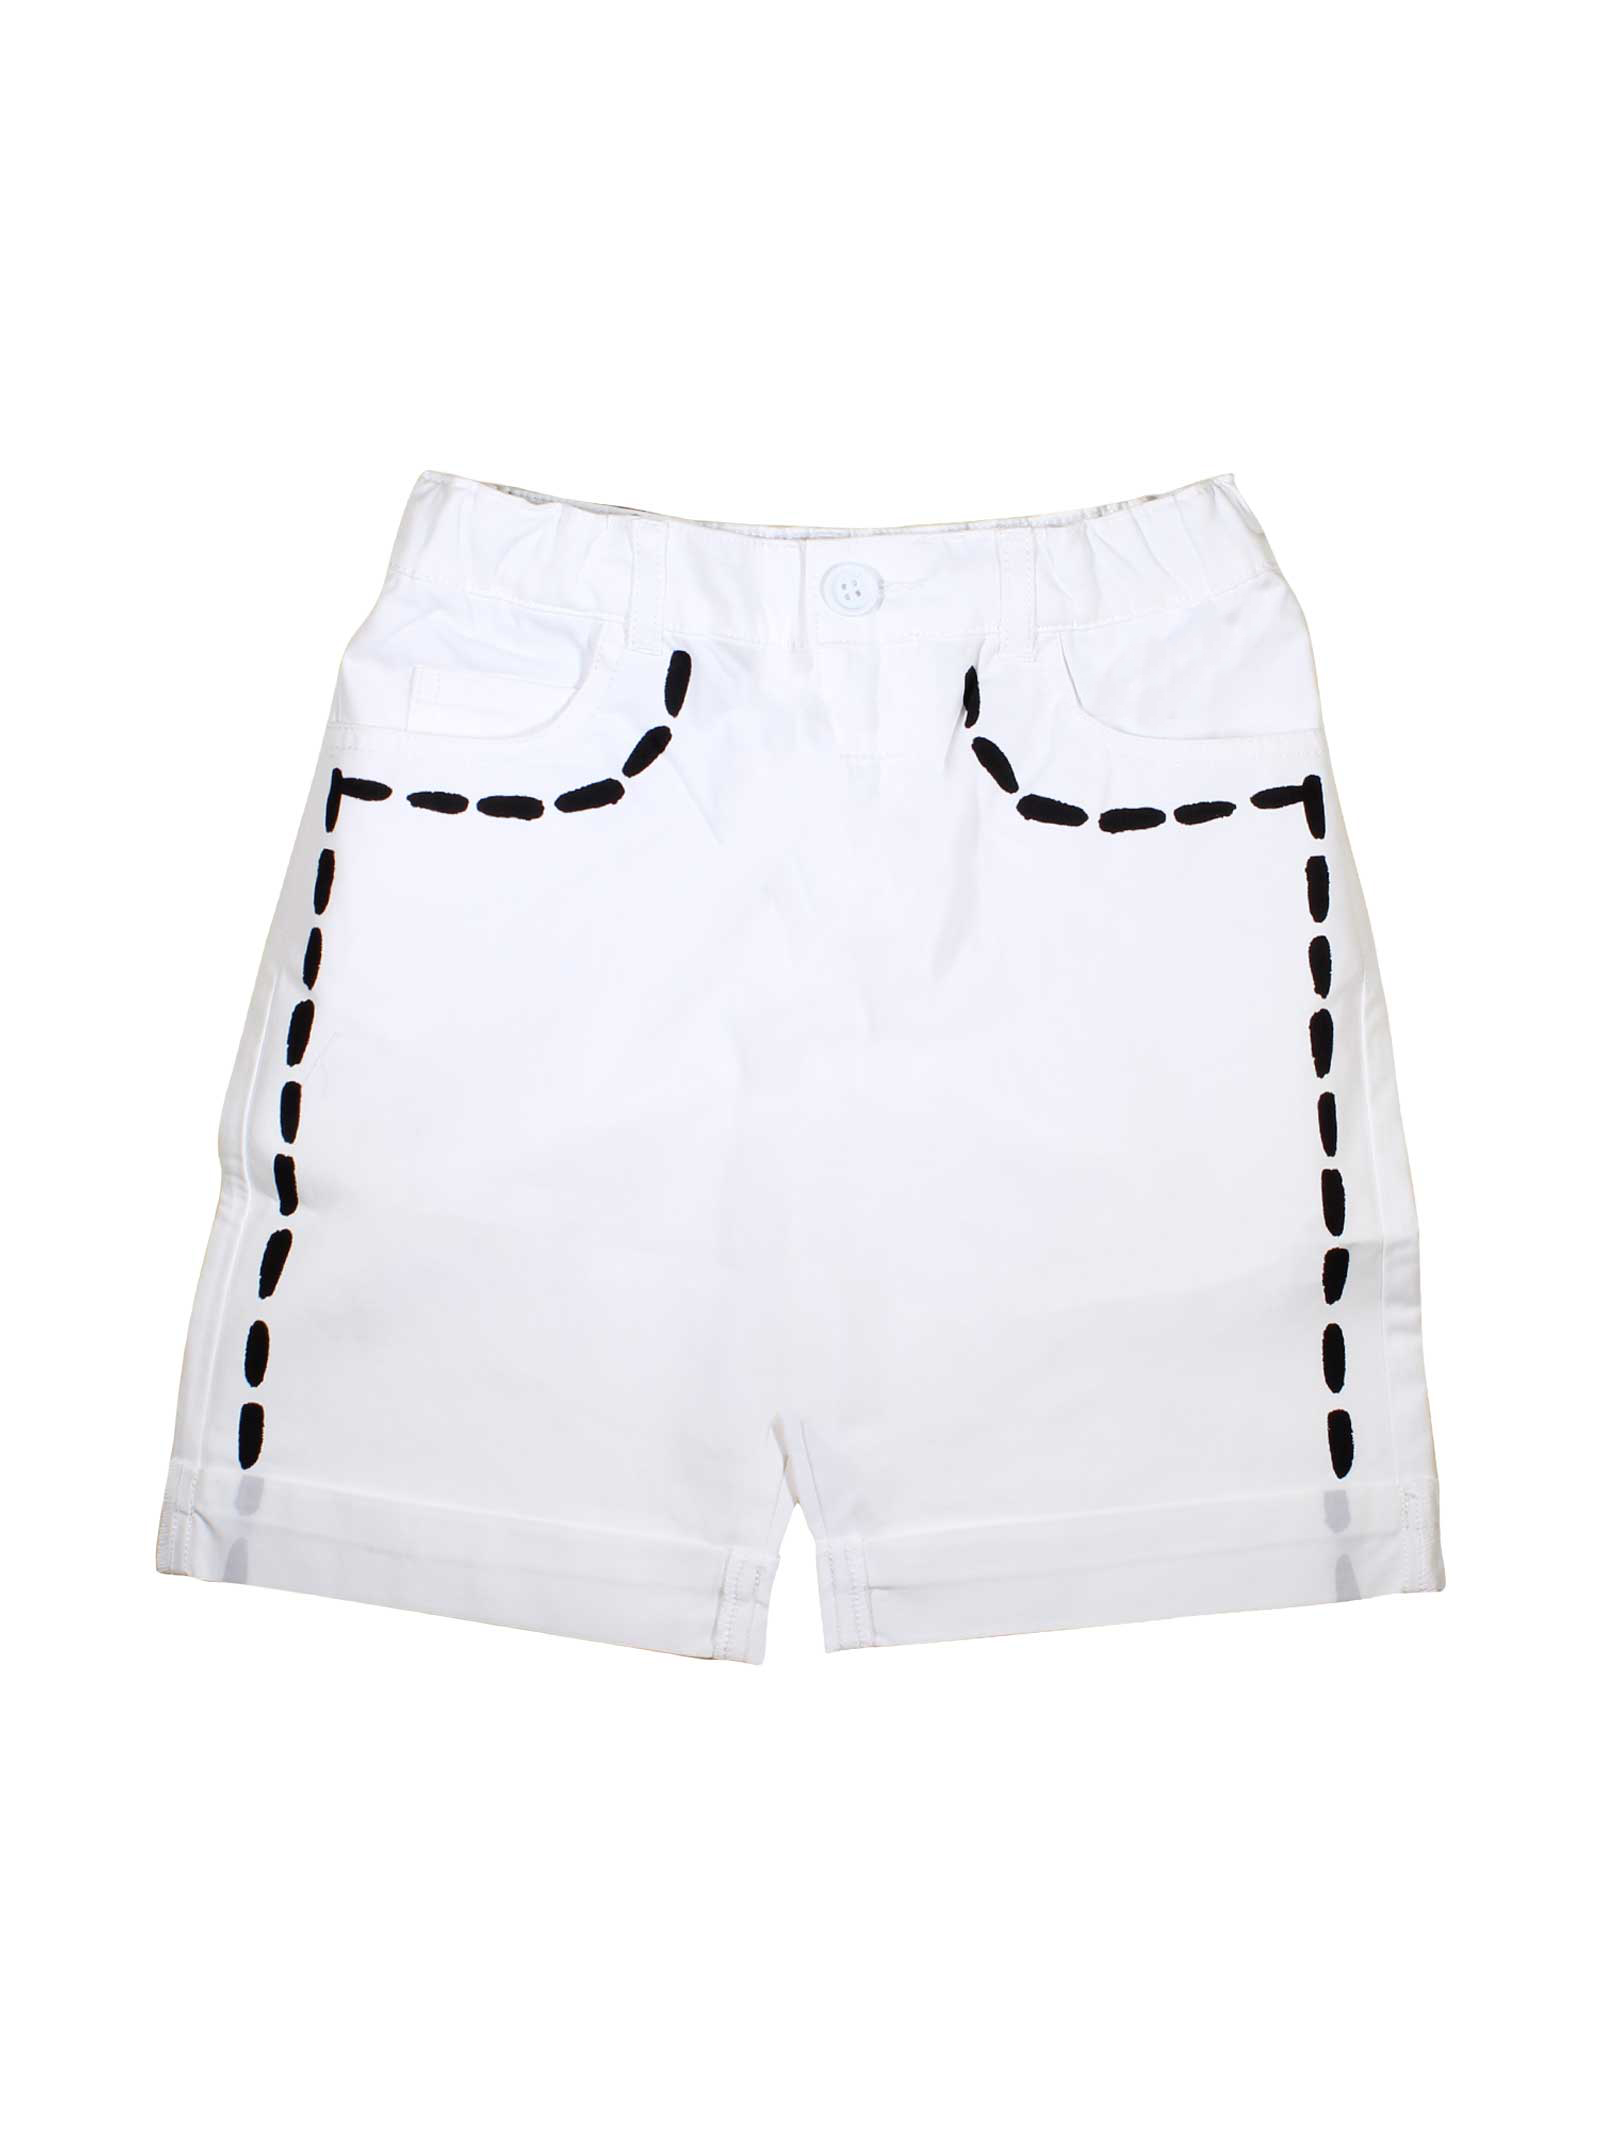 9602bce23 ... WHITE SHORTS MOSCHINO KIDS FOR BOY MOSCHINO KIDS | 30 |  HUP02PL0A0110101 ...